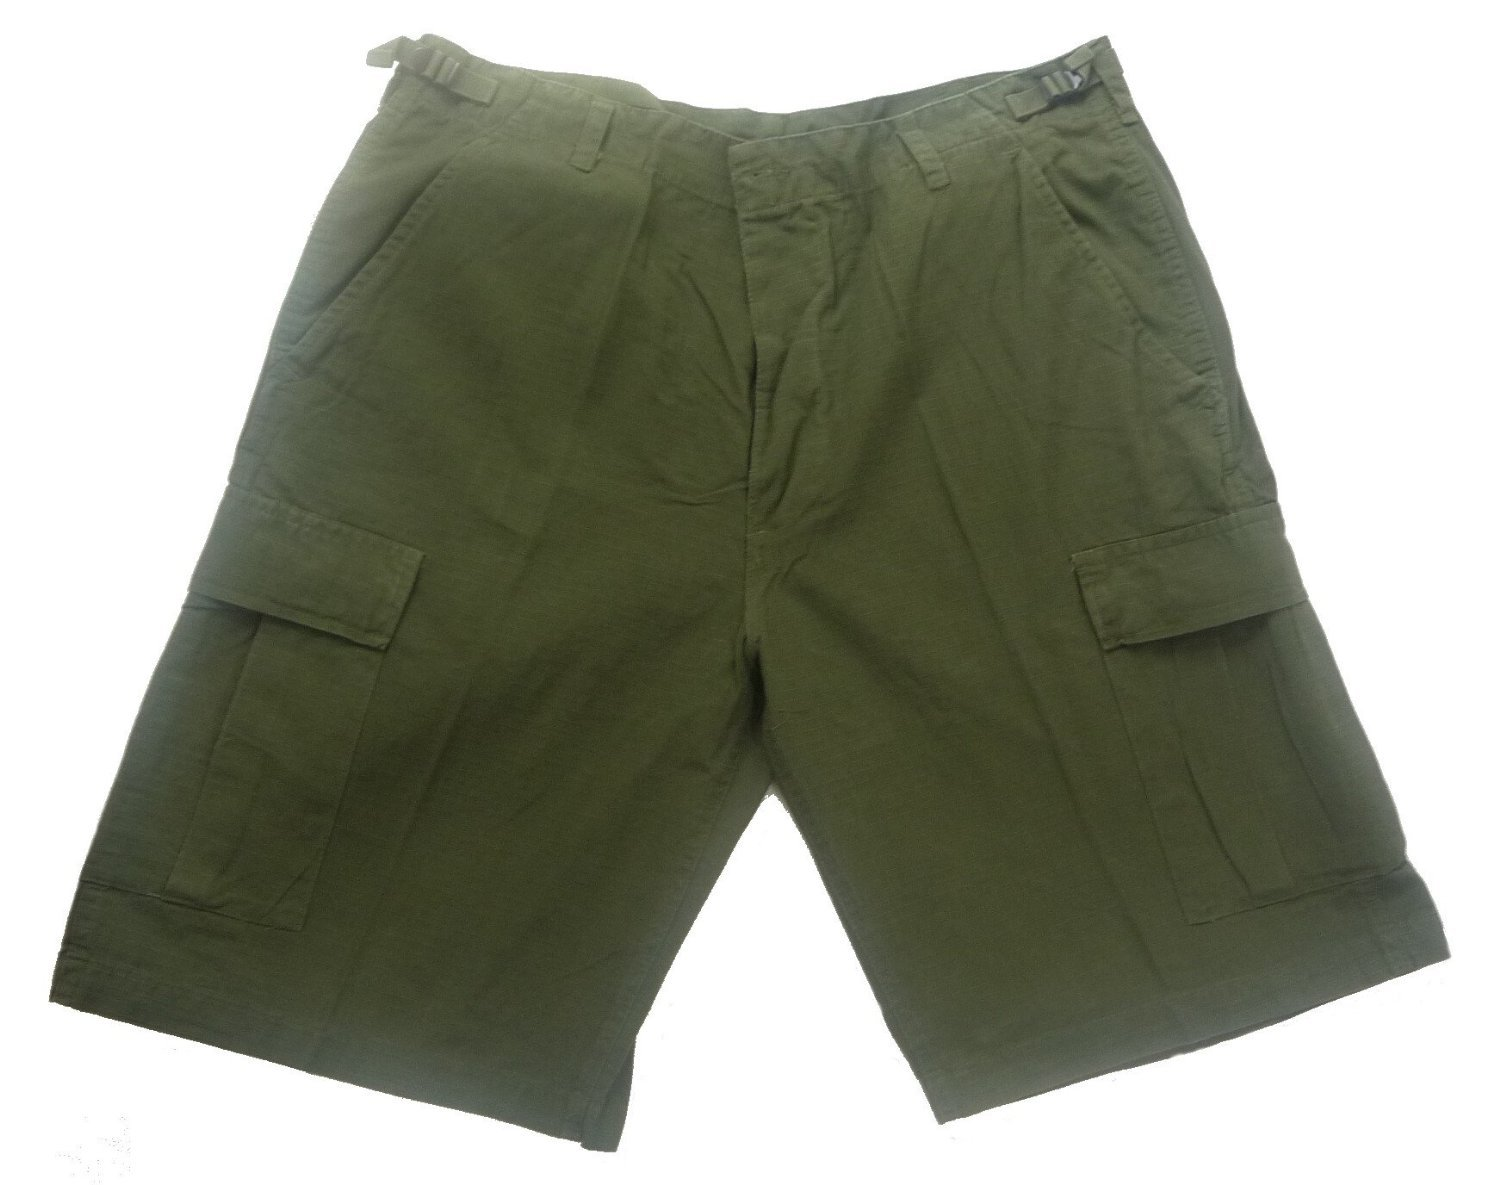 Mens Designer Fashion Army Military Cargo Walk Shorts Pants Prewash Olive Gre... Mil-Tec 11402001-005